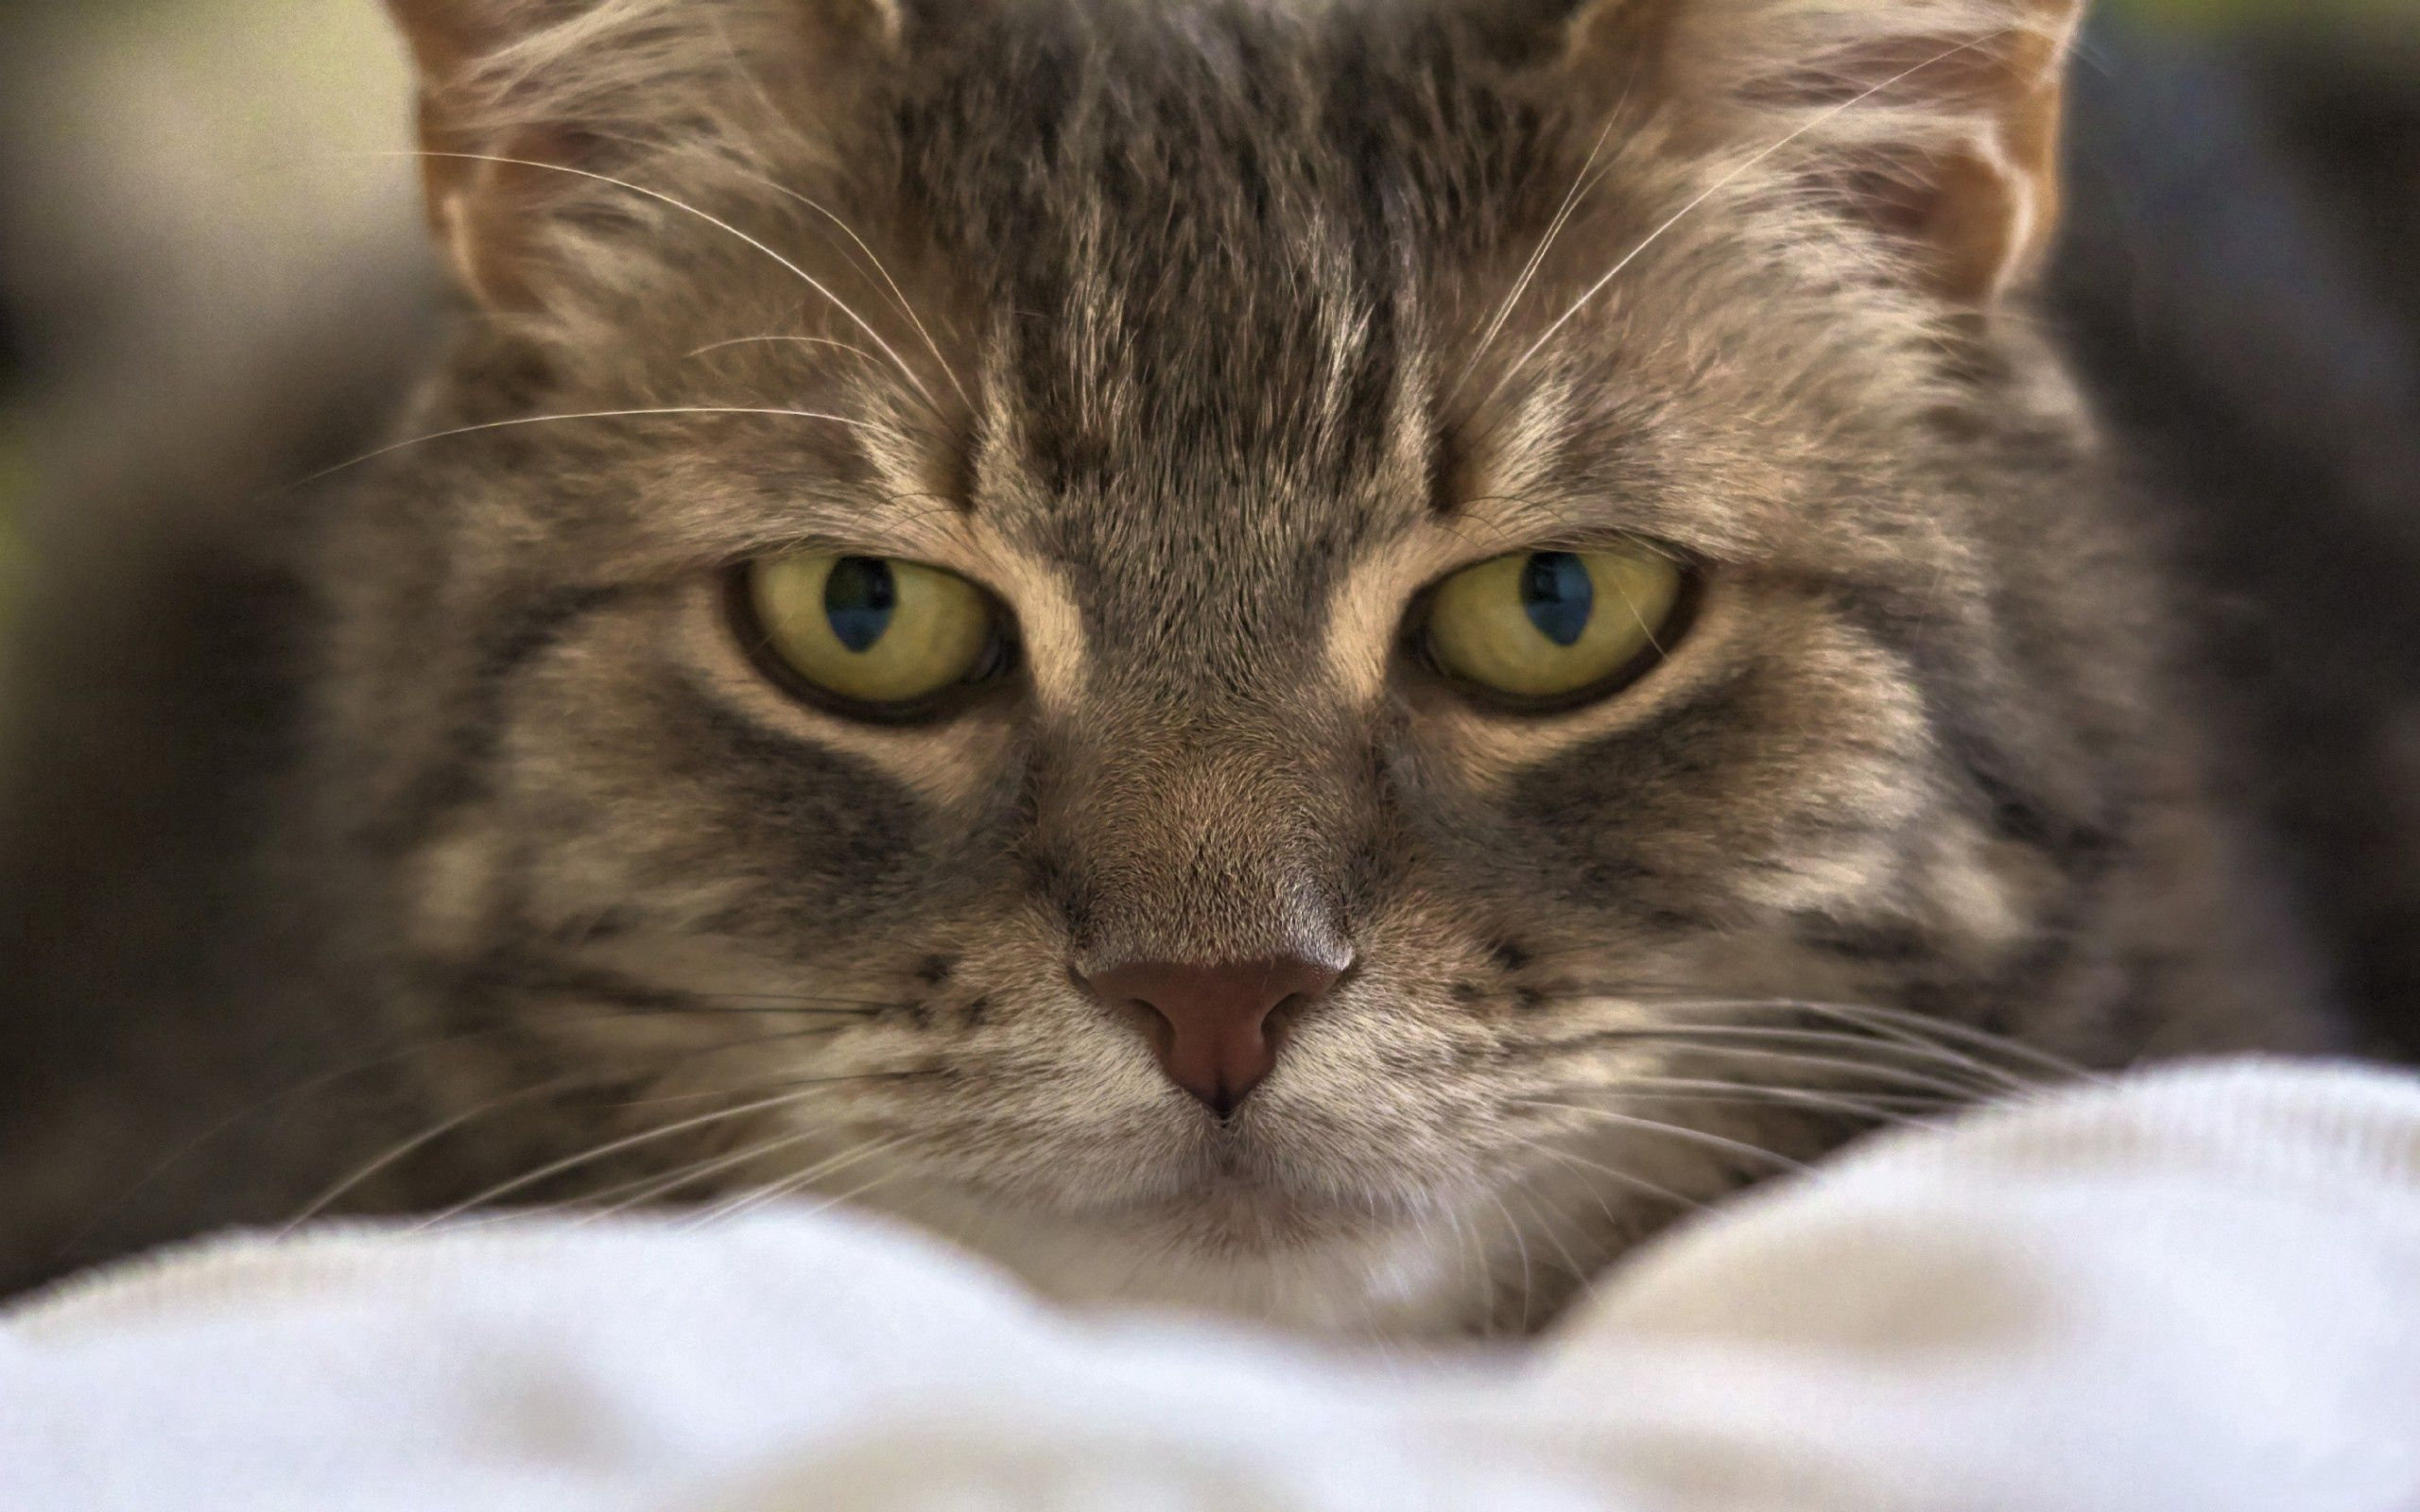 128804 download wallpaper Animals, Cat, Muzzle, Eyes, Fluffy screensavers and pictures for free